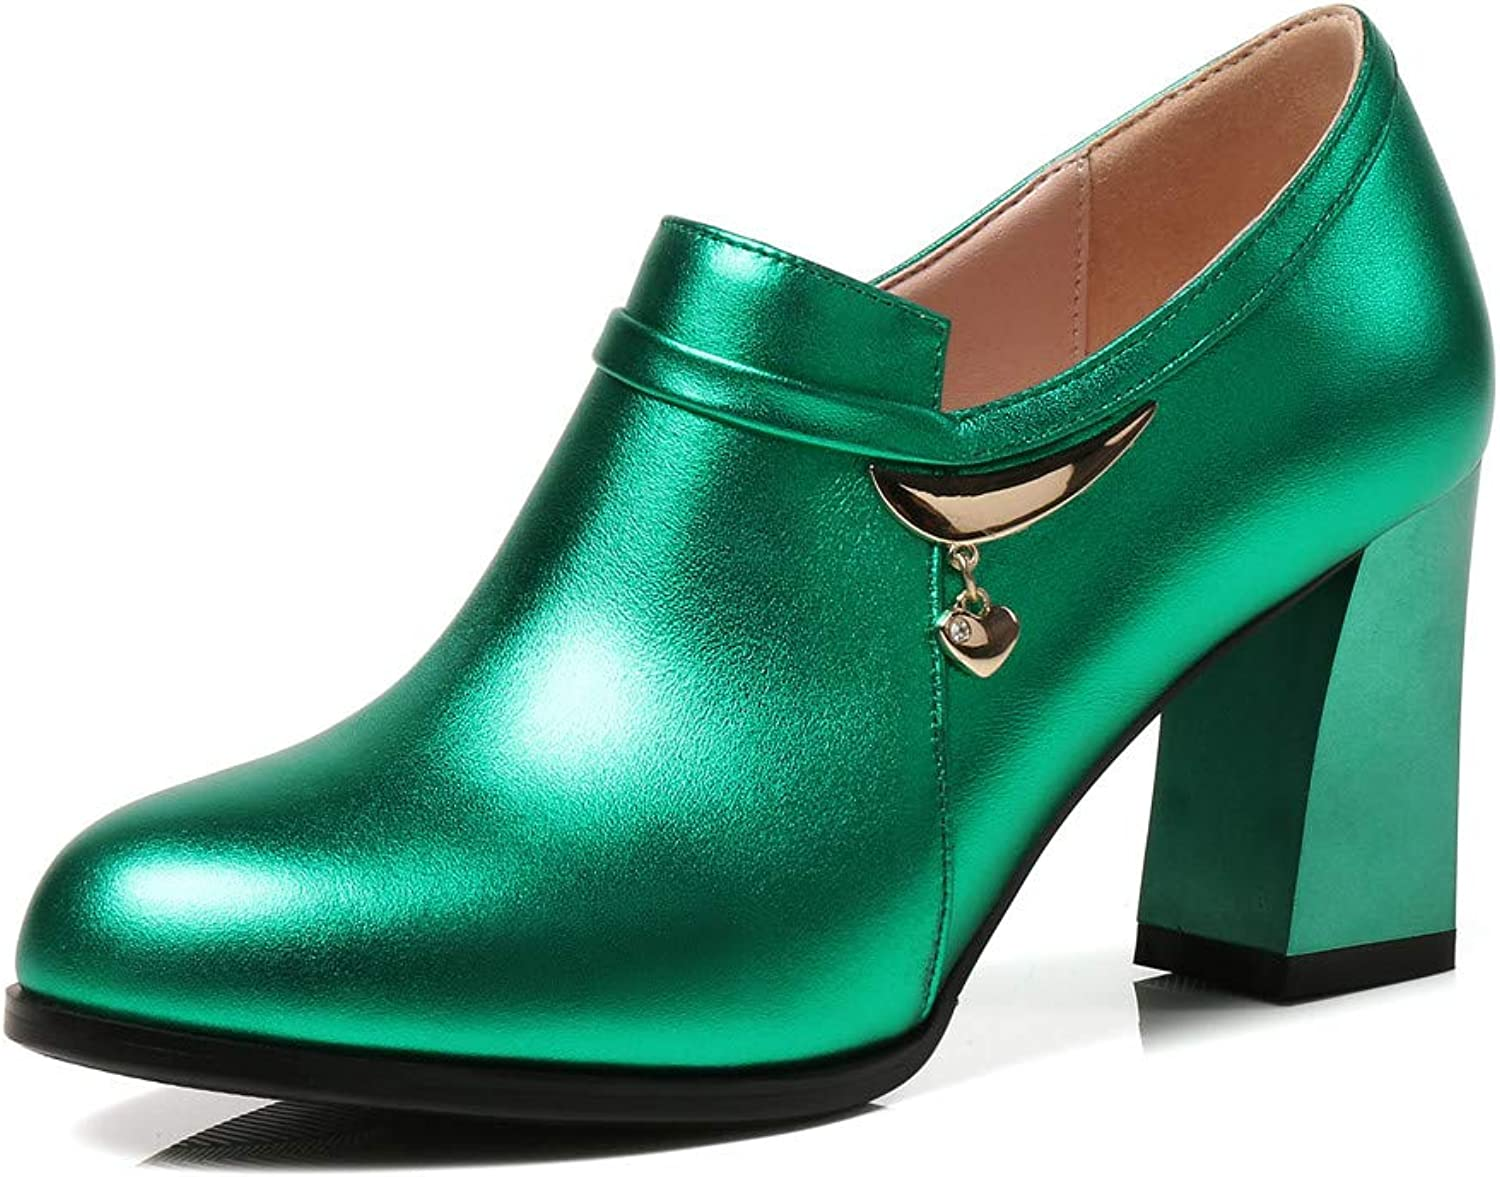 Nine Seven Women's Patent Leather Round Toe Chunky Heel Handmade Glossy and Comfortable Spring Summer Pumps shoes